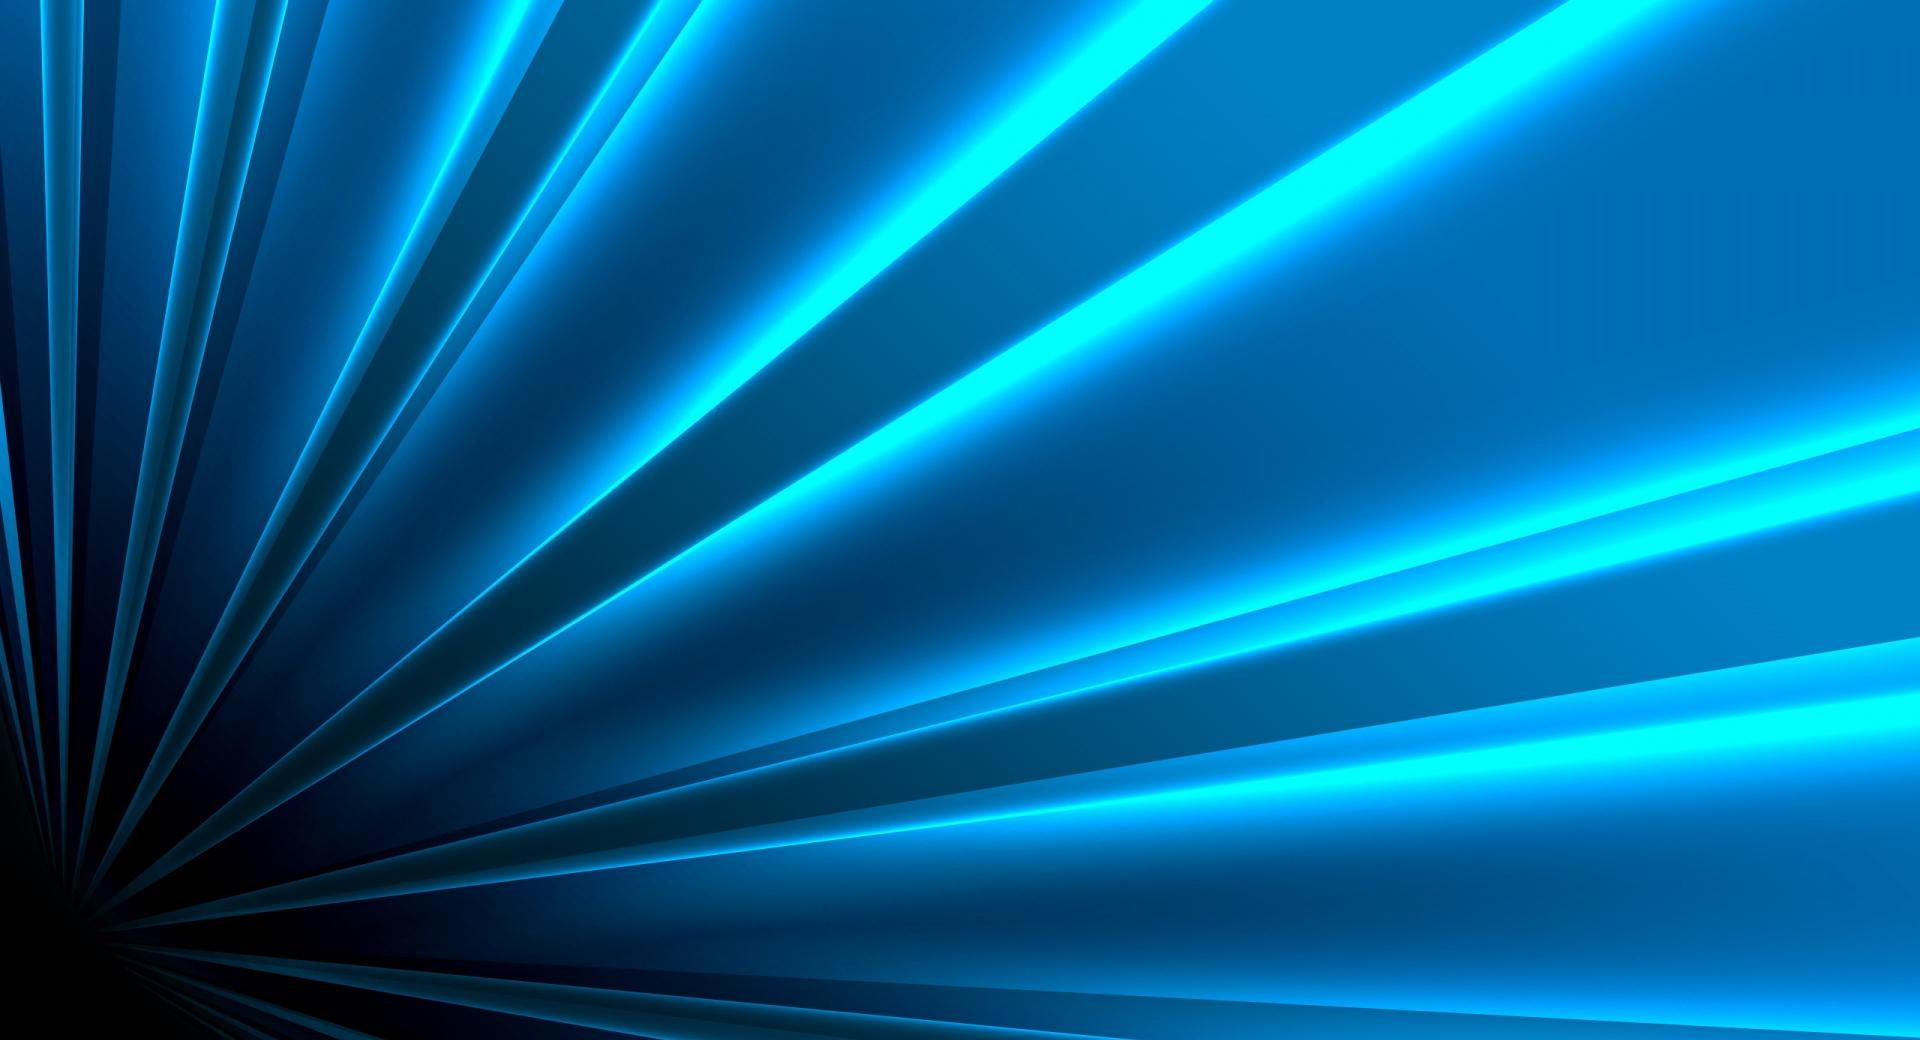 Blue Wormhole wallpapers HD quality